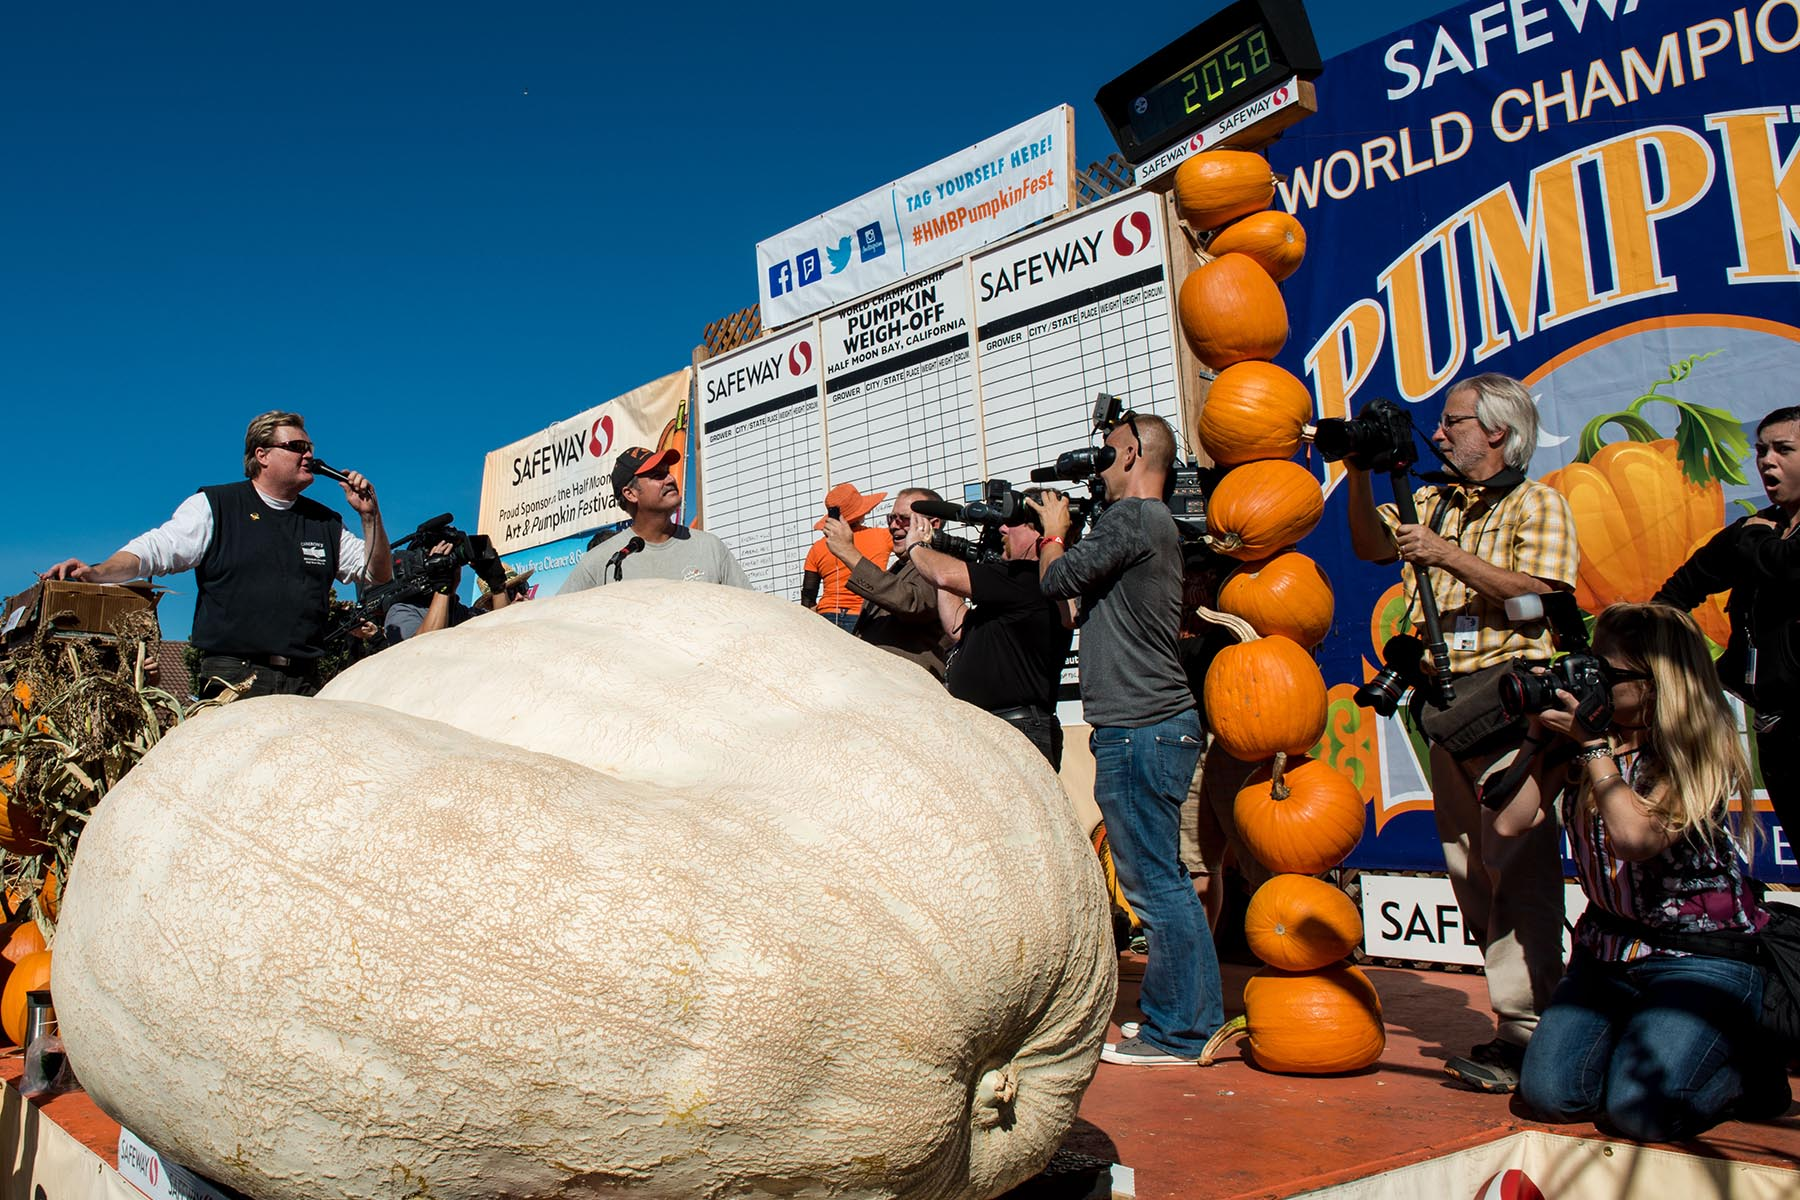 The winner of the 2014 pumpkin weigh off in Half Moon Bay, California. Photo courtesy of Miramar events.